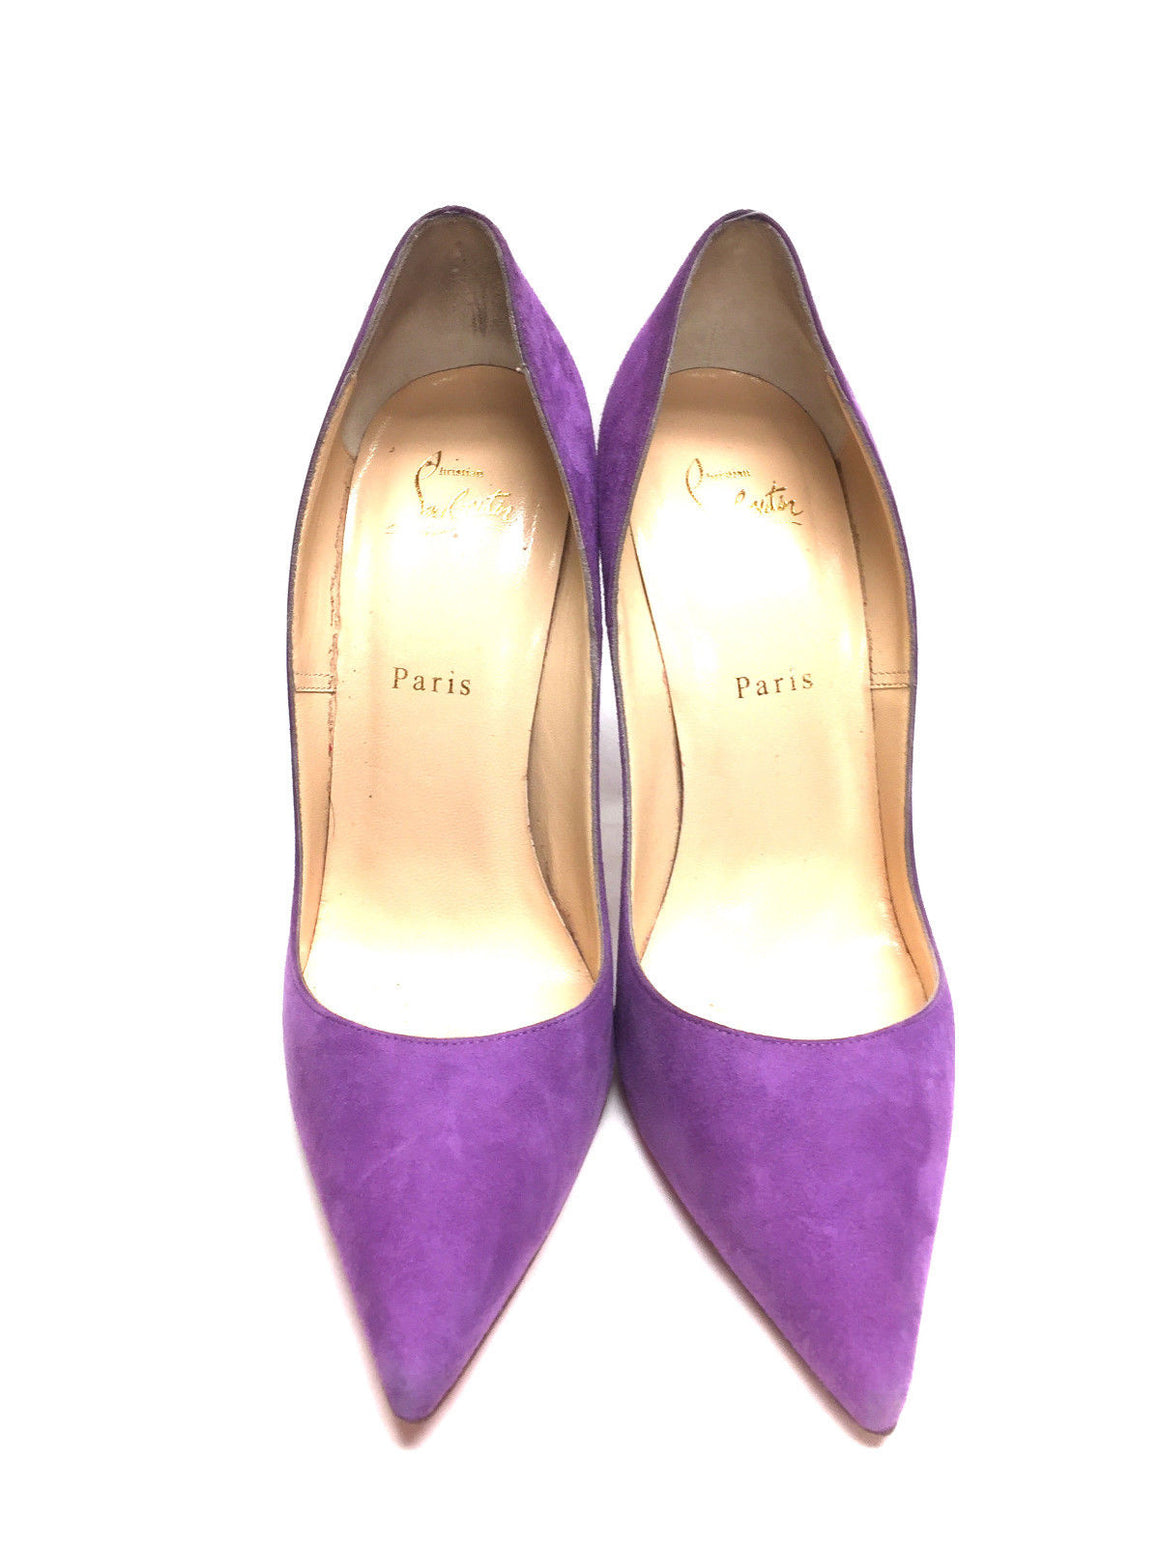 "bisbiz.com CHRISTIAN LOUBOUTIN  Orchid-Purple Suede Pointed-Toe Stiletto Heels ""SO KATE"" Pumps  Size: 39.5 / 9 - Bis Luxury Resale"